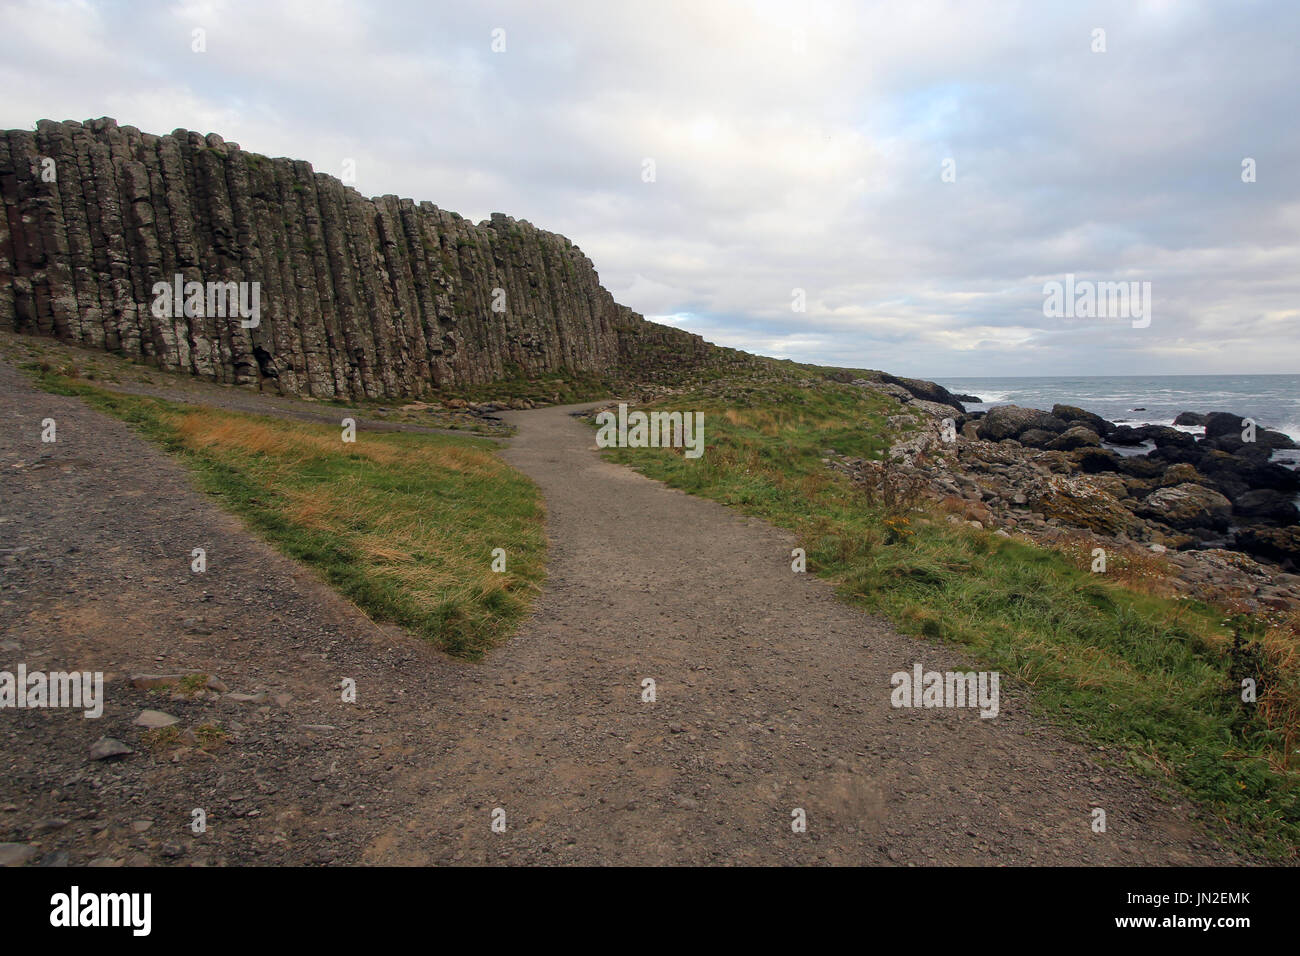 Famous tourist site in Northern Ireland (UK) - Stock Image